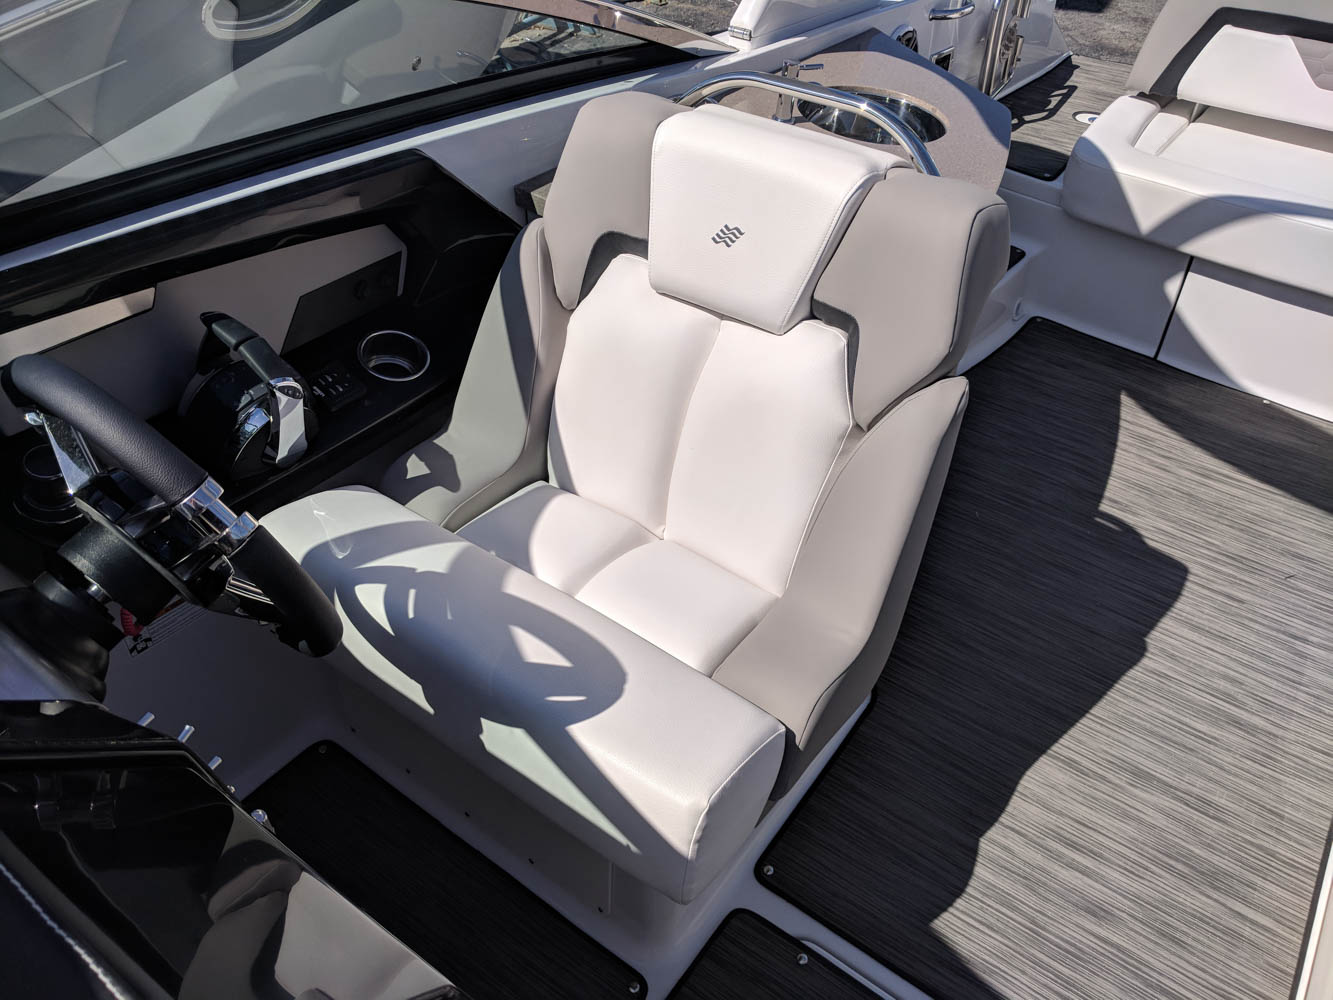 2019 Four Winns - Bowrider - Horizon 290 OB - Boaters Landing